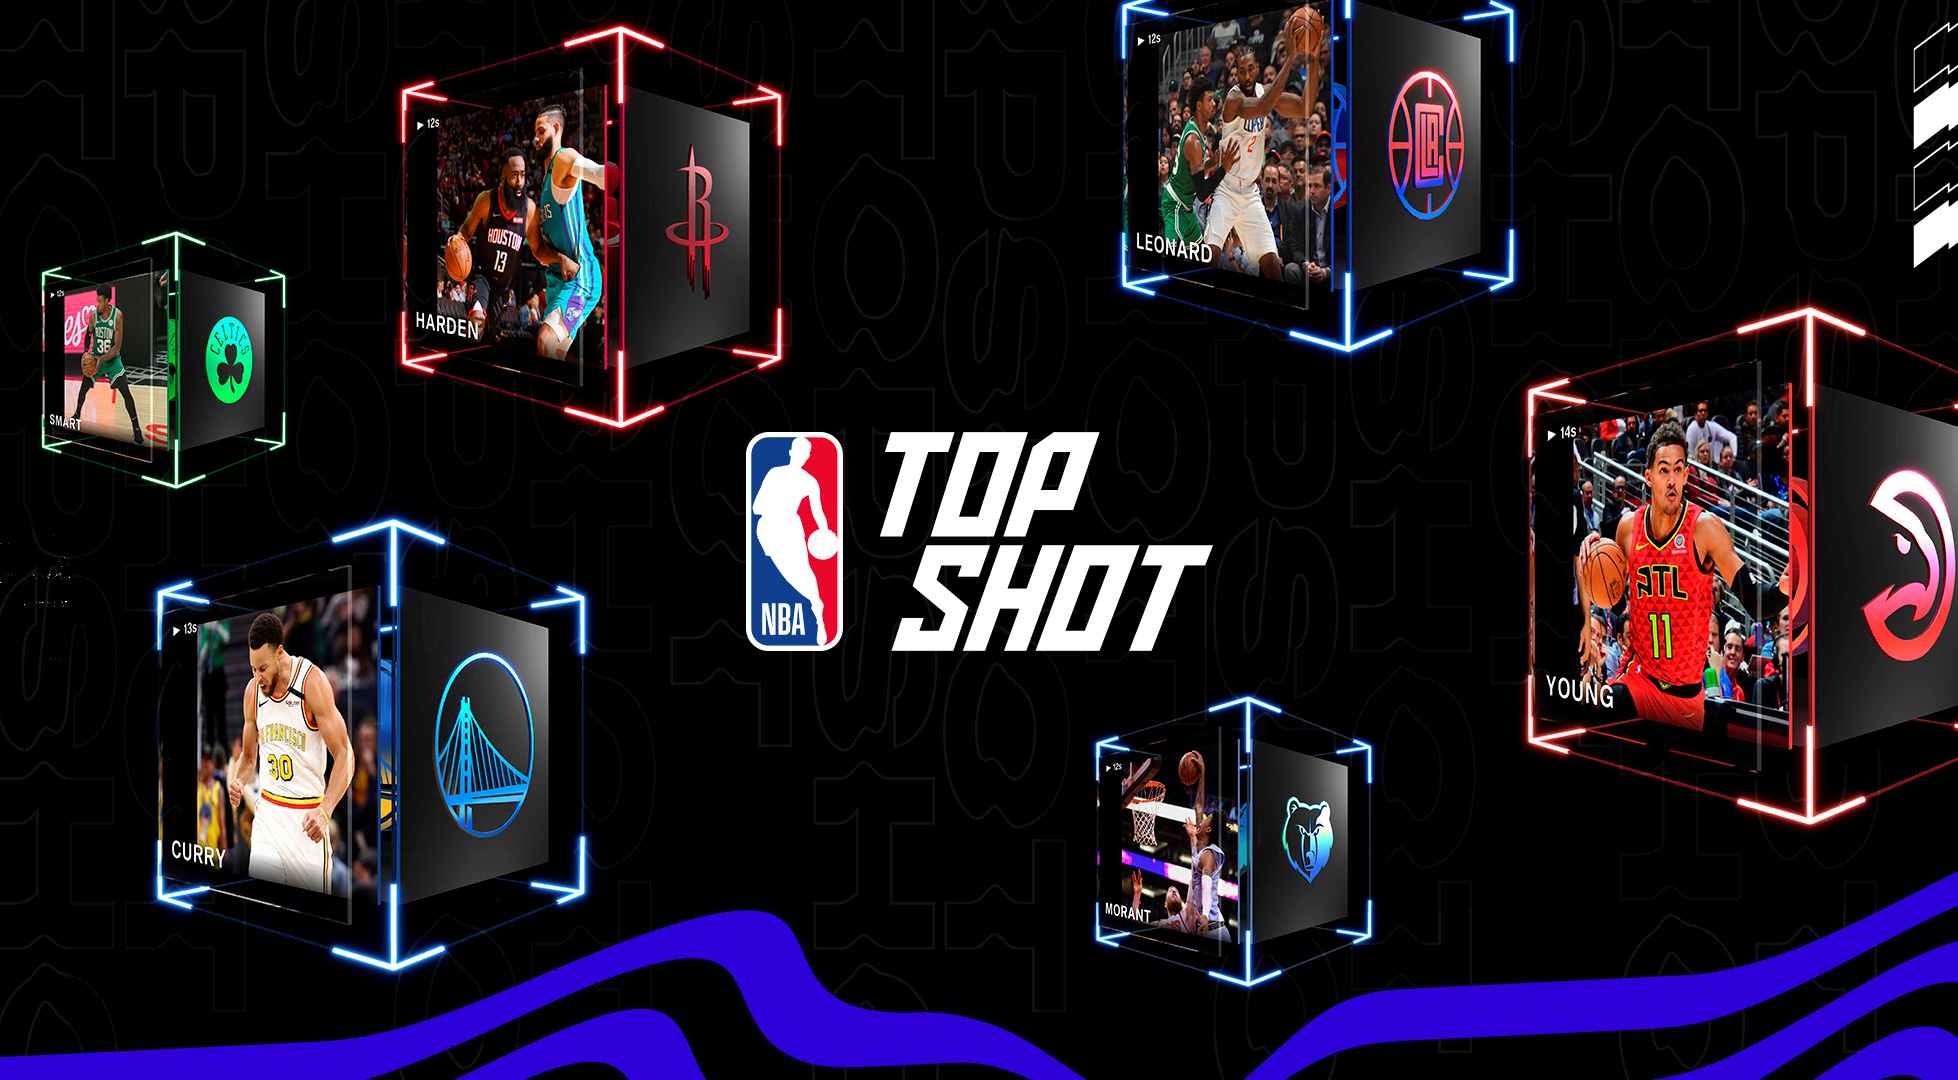 Images created for the launch of NBA Top Shot, an online platform which allows users to buy and trade videos of basketball highlights. Dapper Labs/via REUTERS